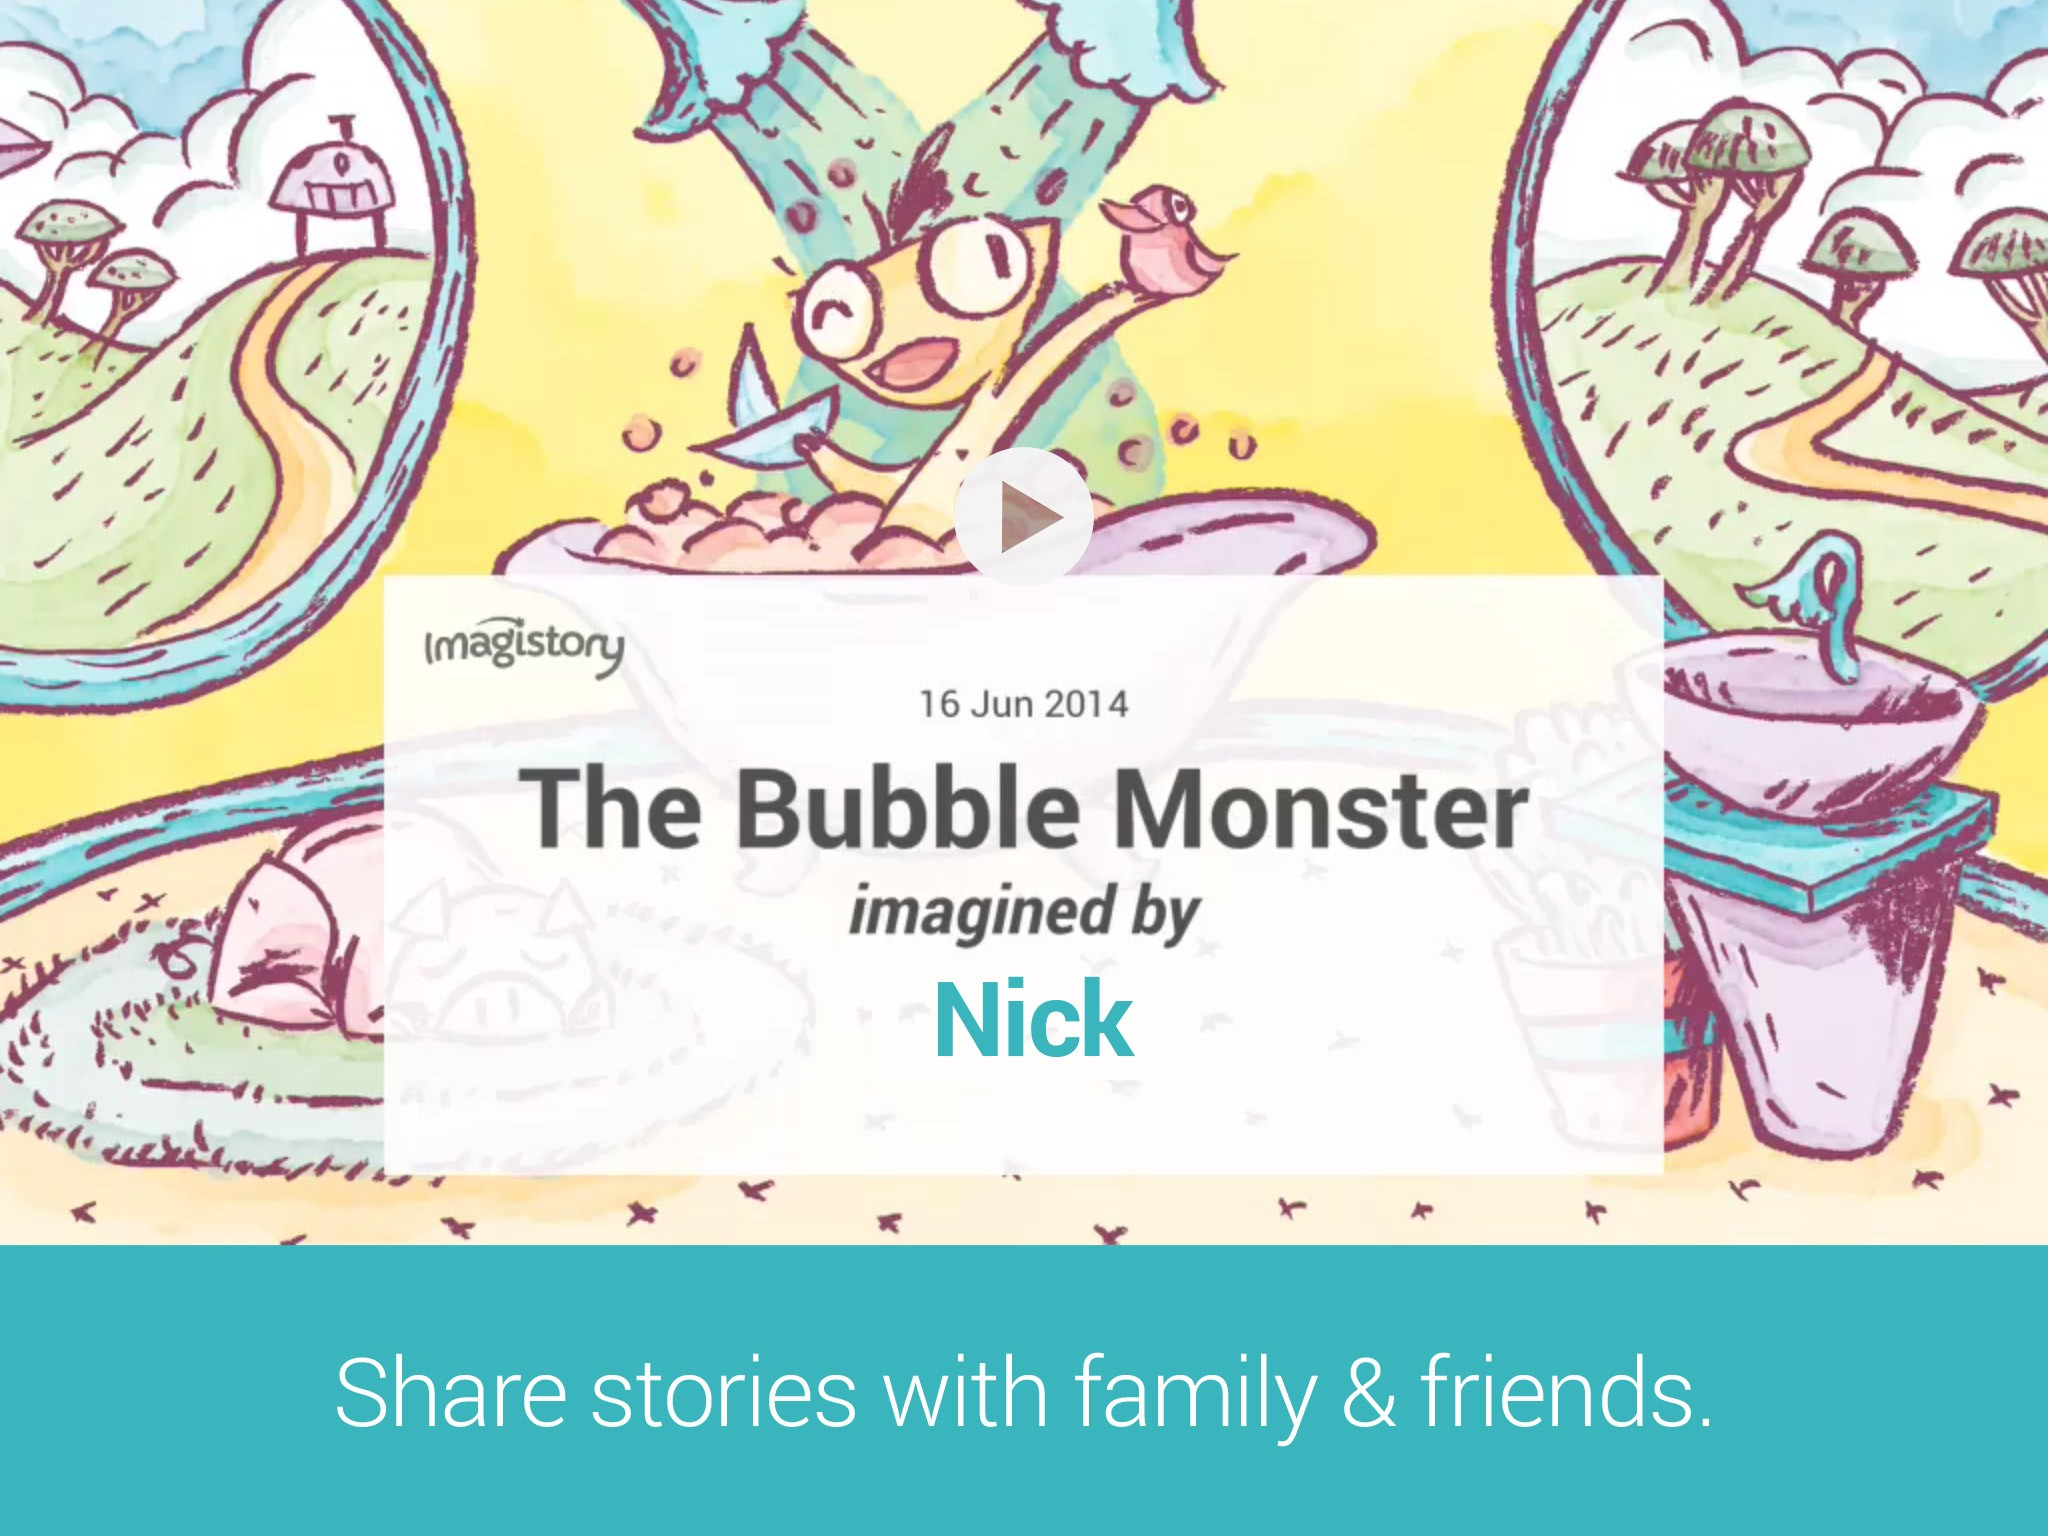 Imagistory: Creative Storytelling App for Kids